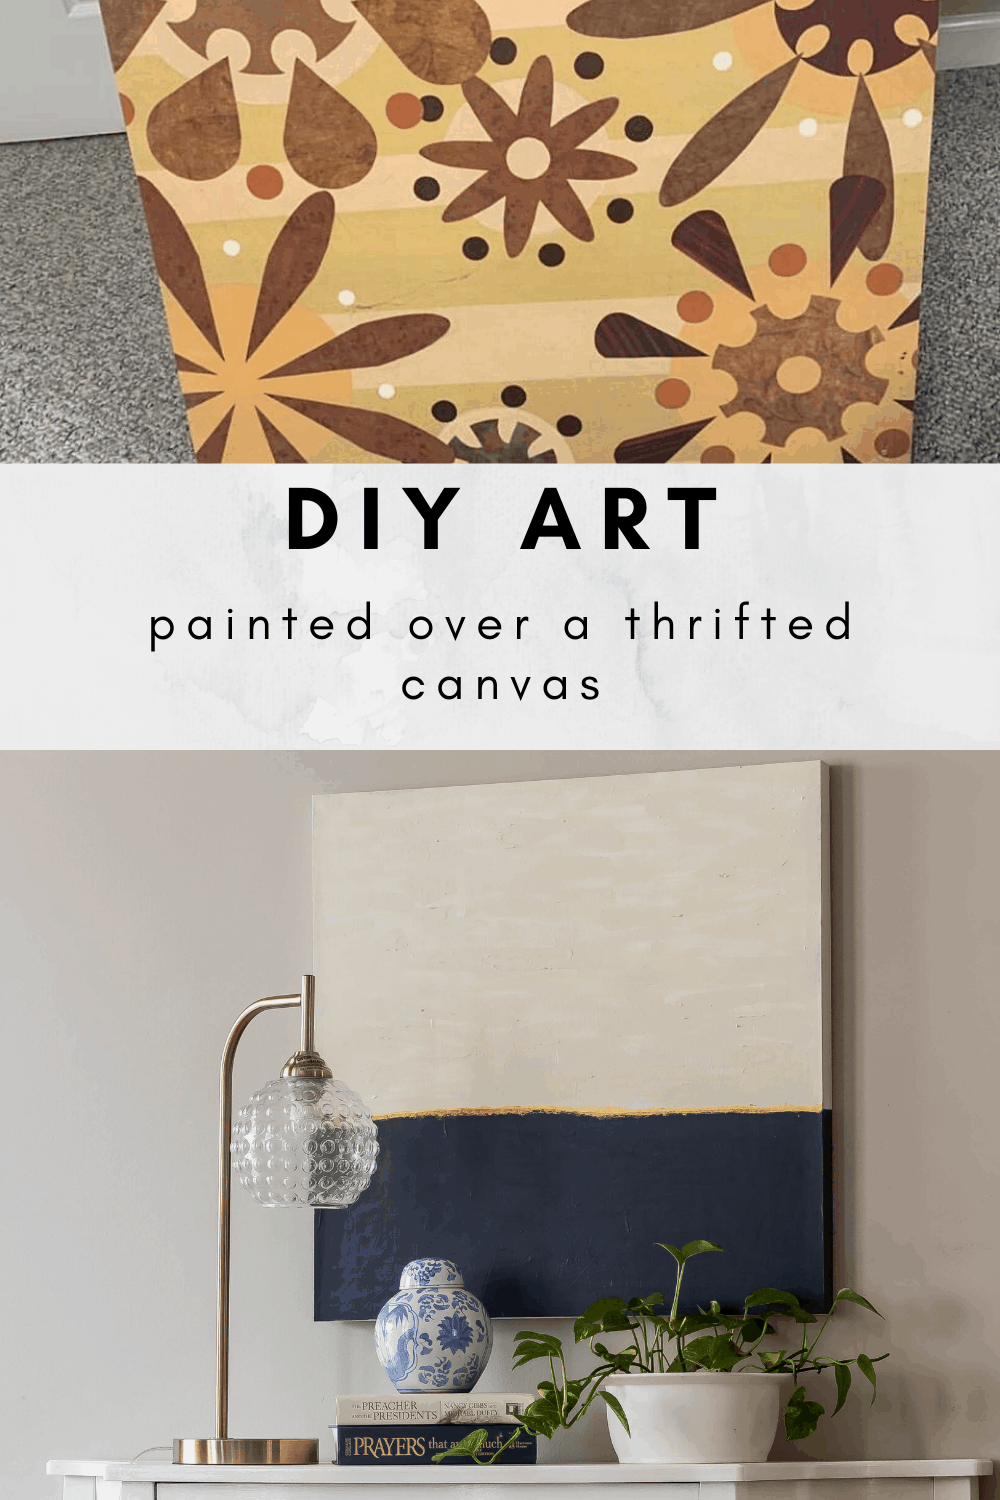 How to paint DIY art over a thrifted canvas.